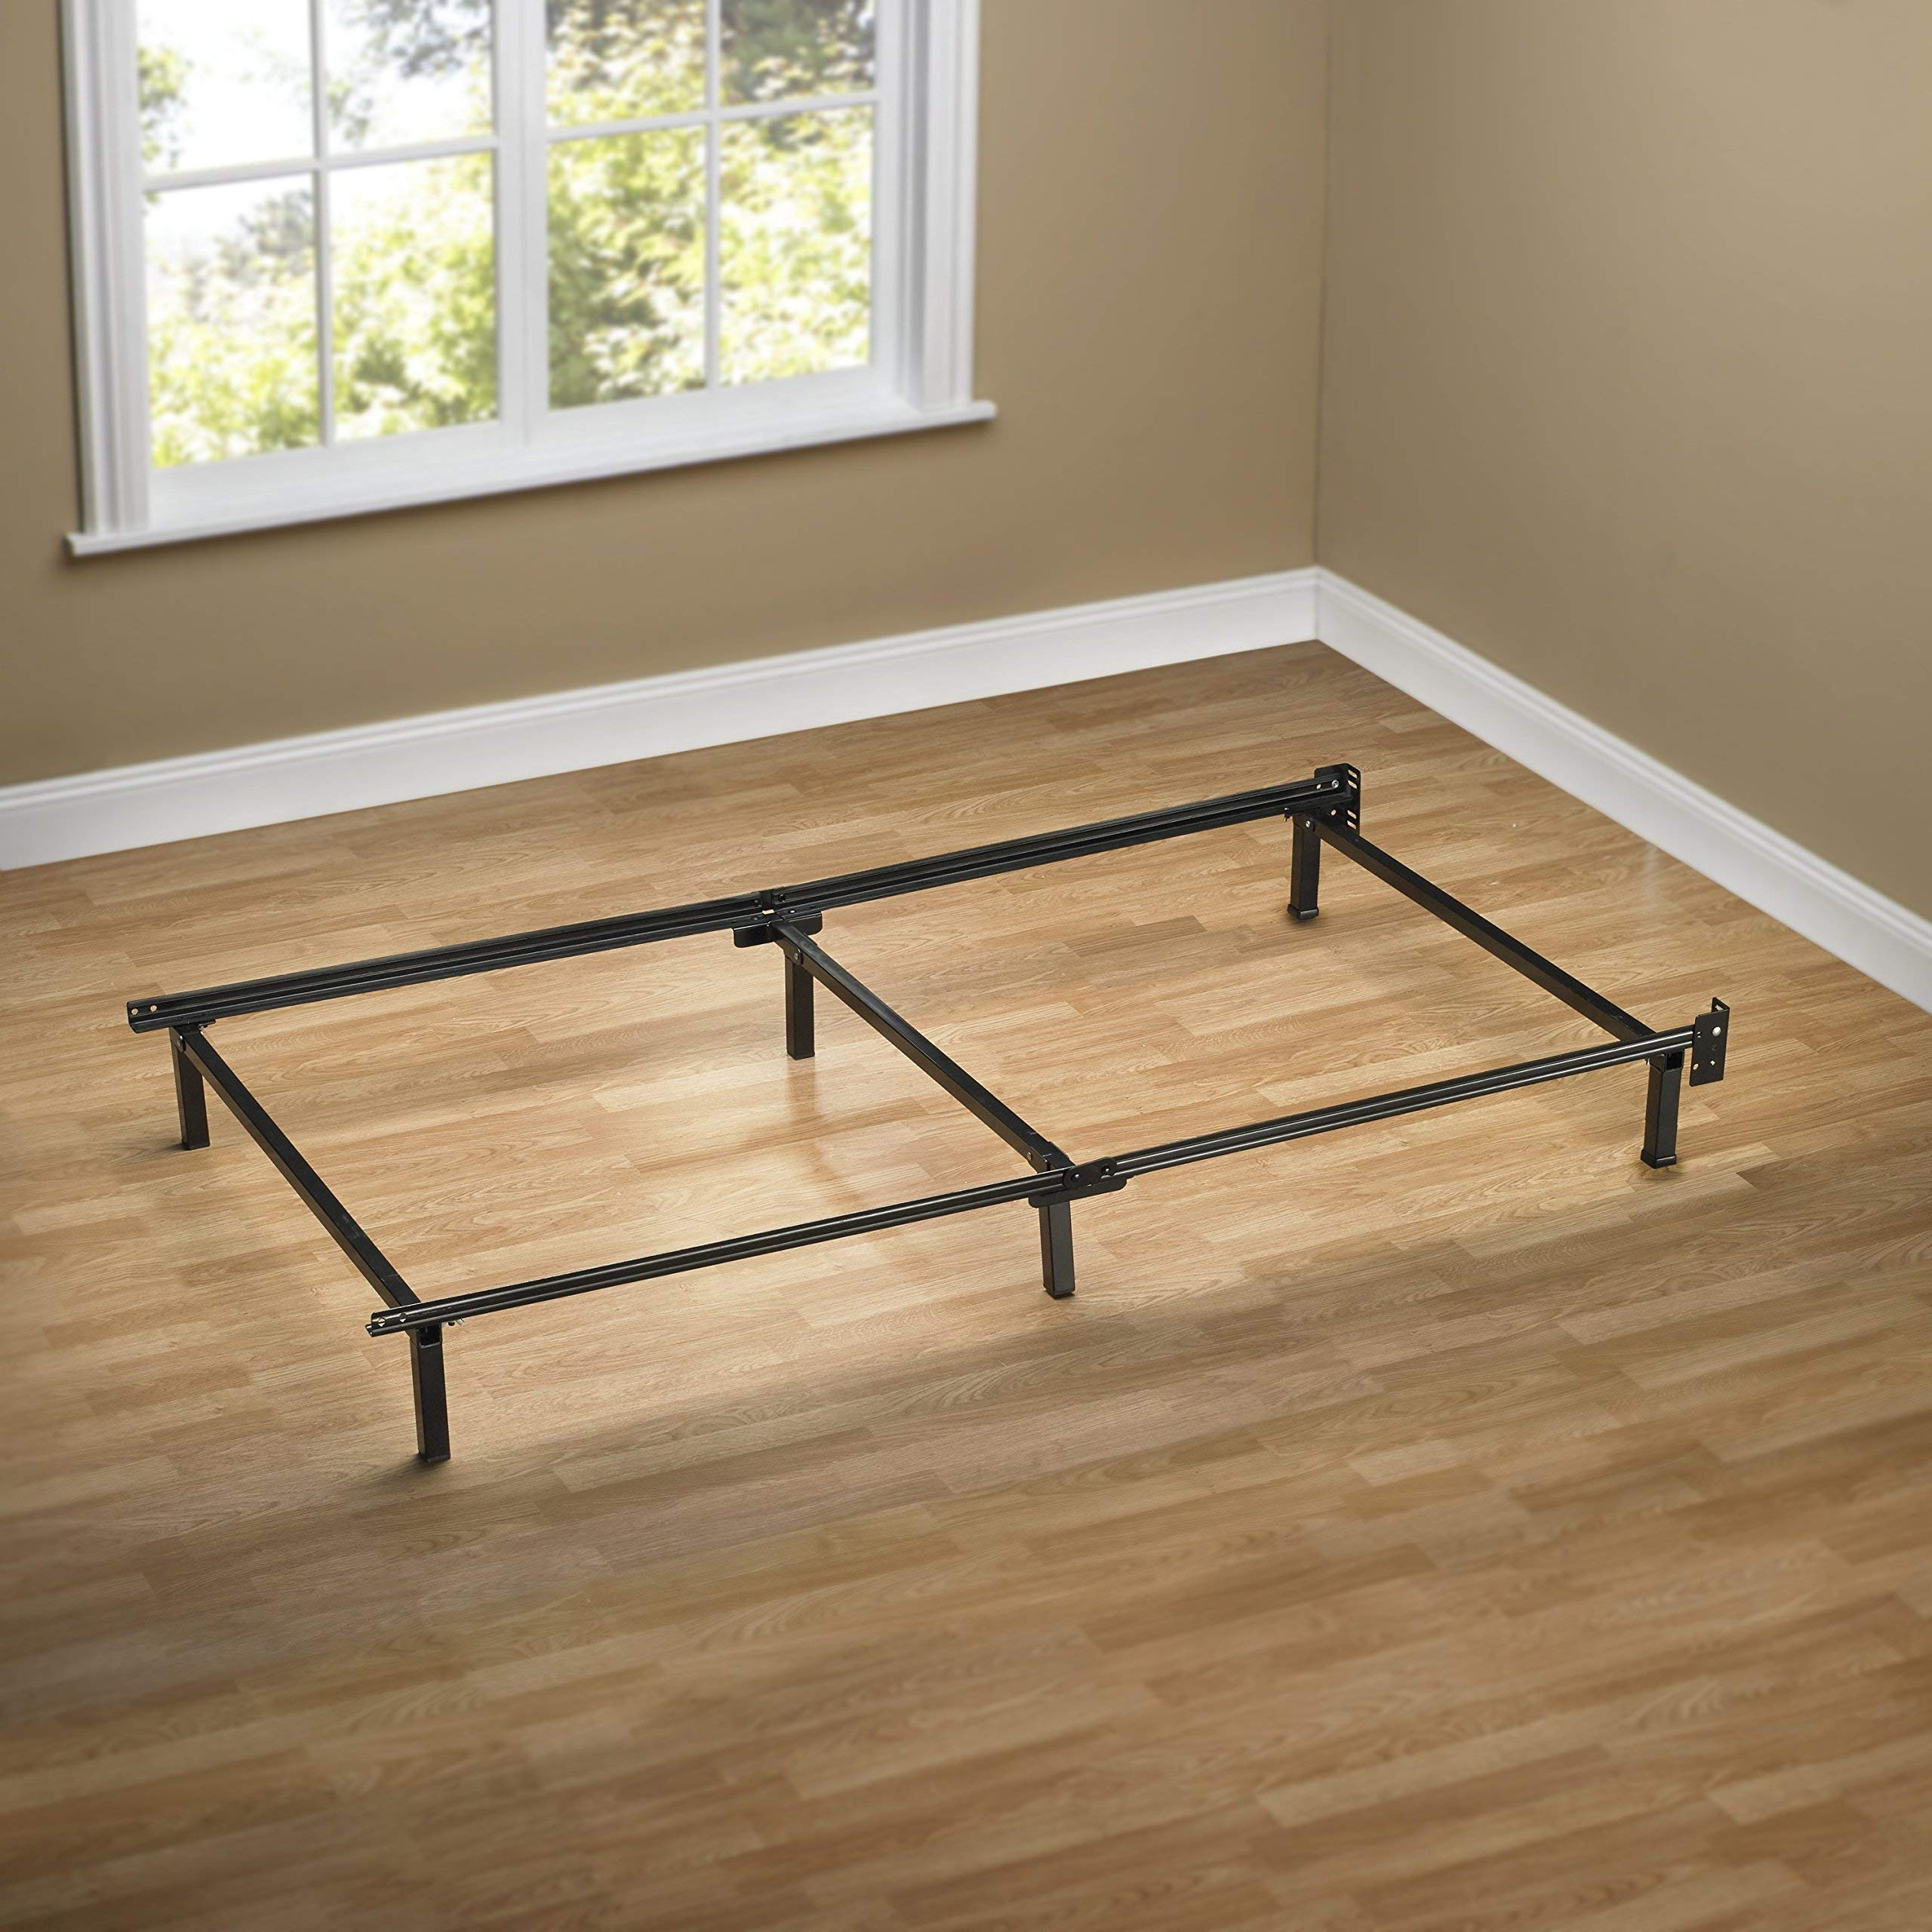 Sleep Revolution Compack Bed Frame with 6-Leg Support System - Twin (Renewed)